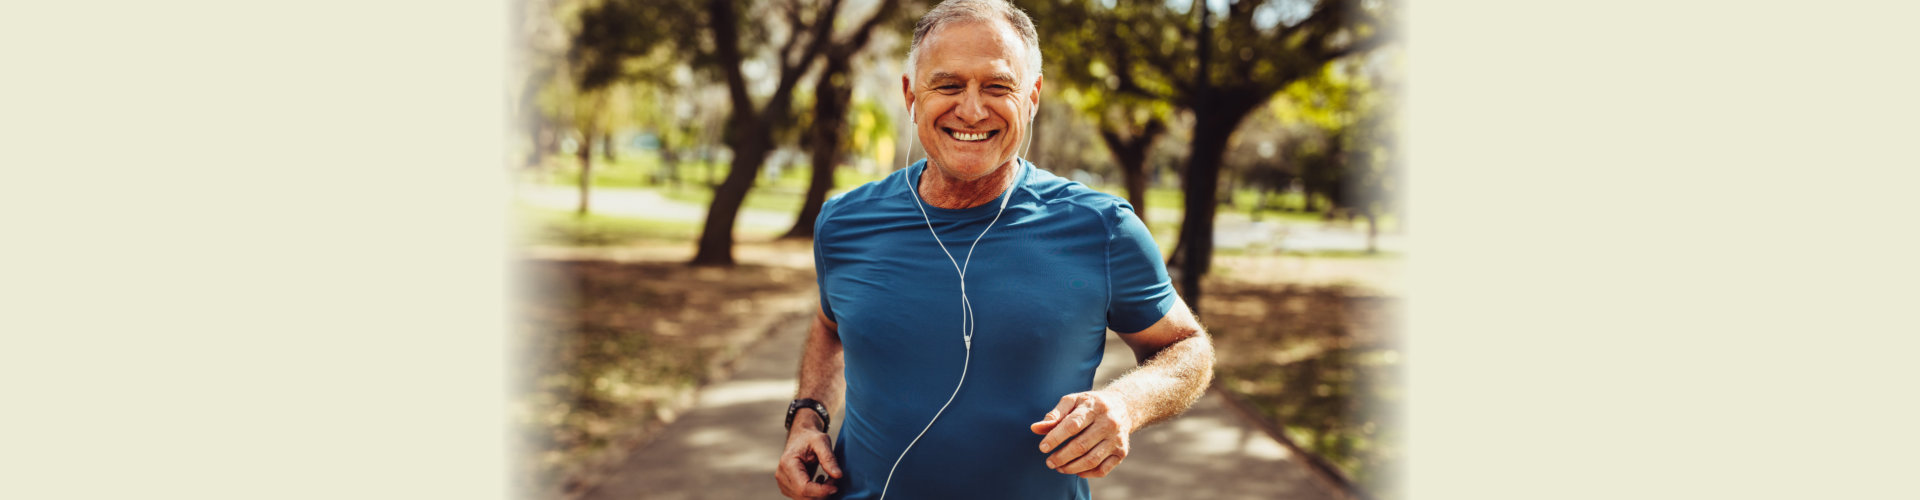 a man wearing earphones while jogging